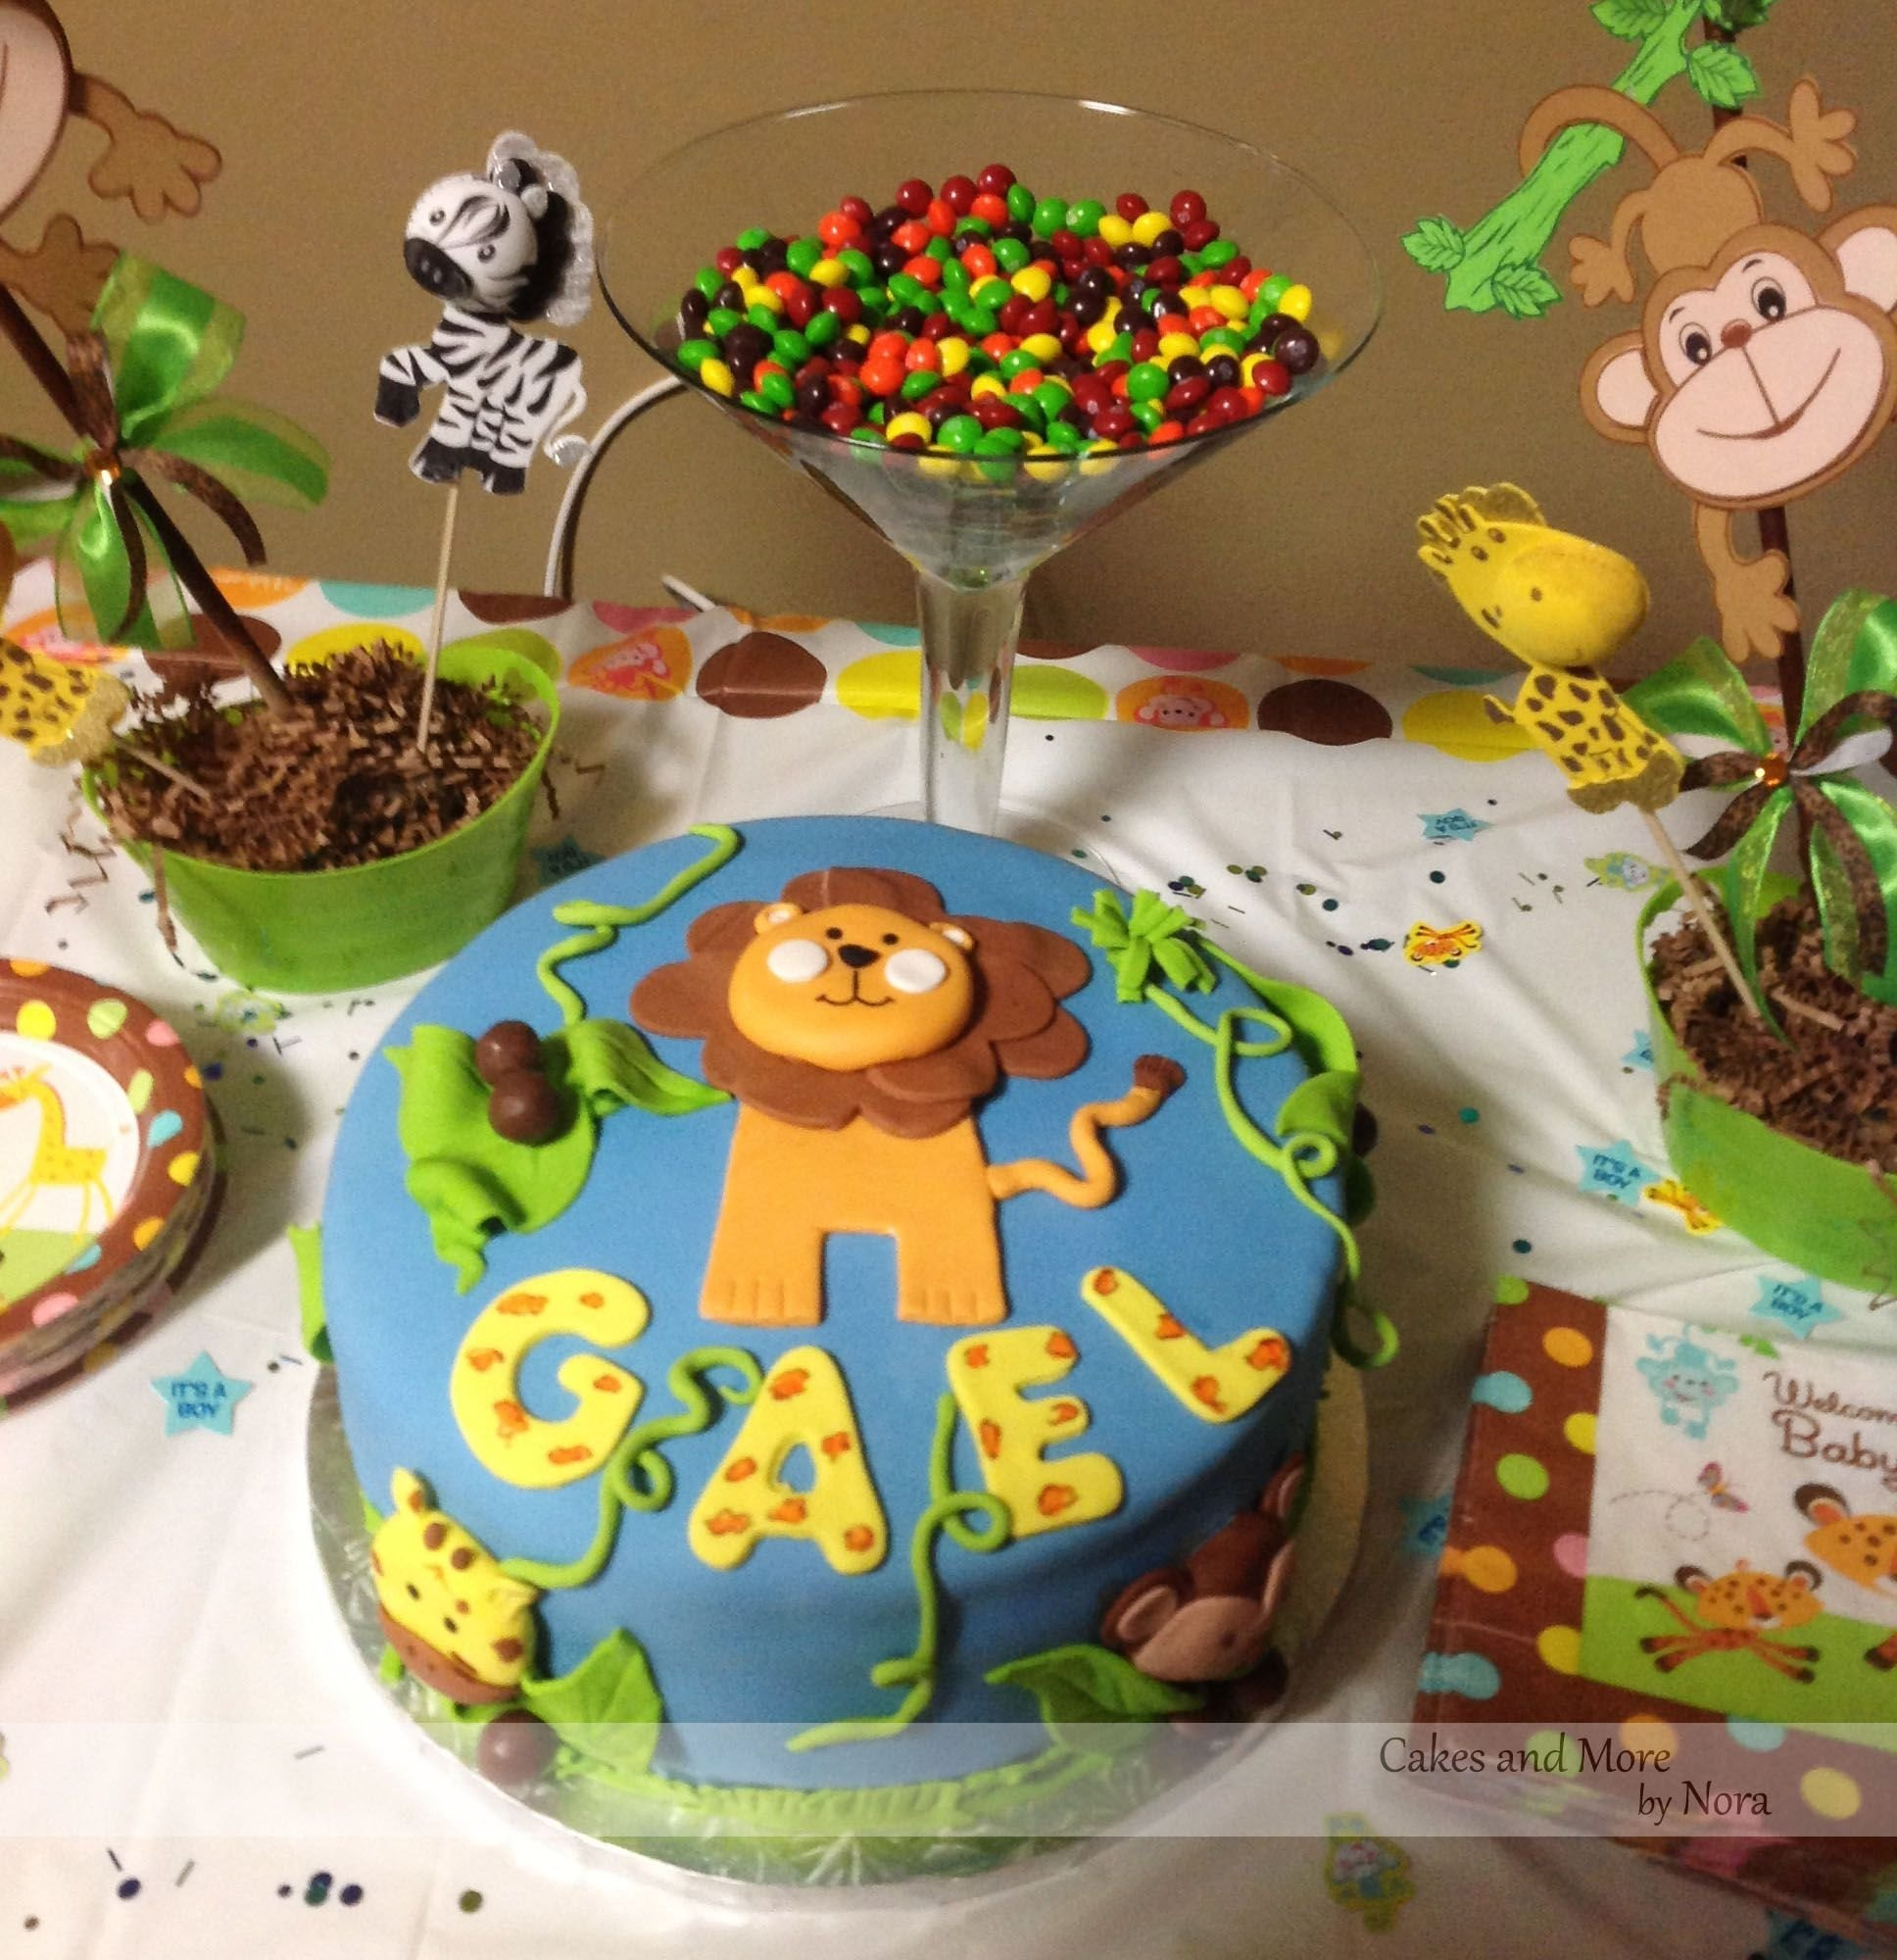 10 Awesome Jungle Themed Baby Shower Ideas jungle themed baby shower cake shower cakes jungle decorations 2